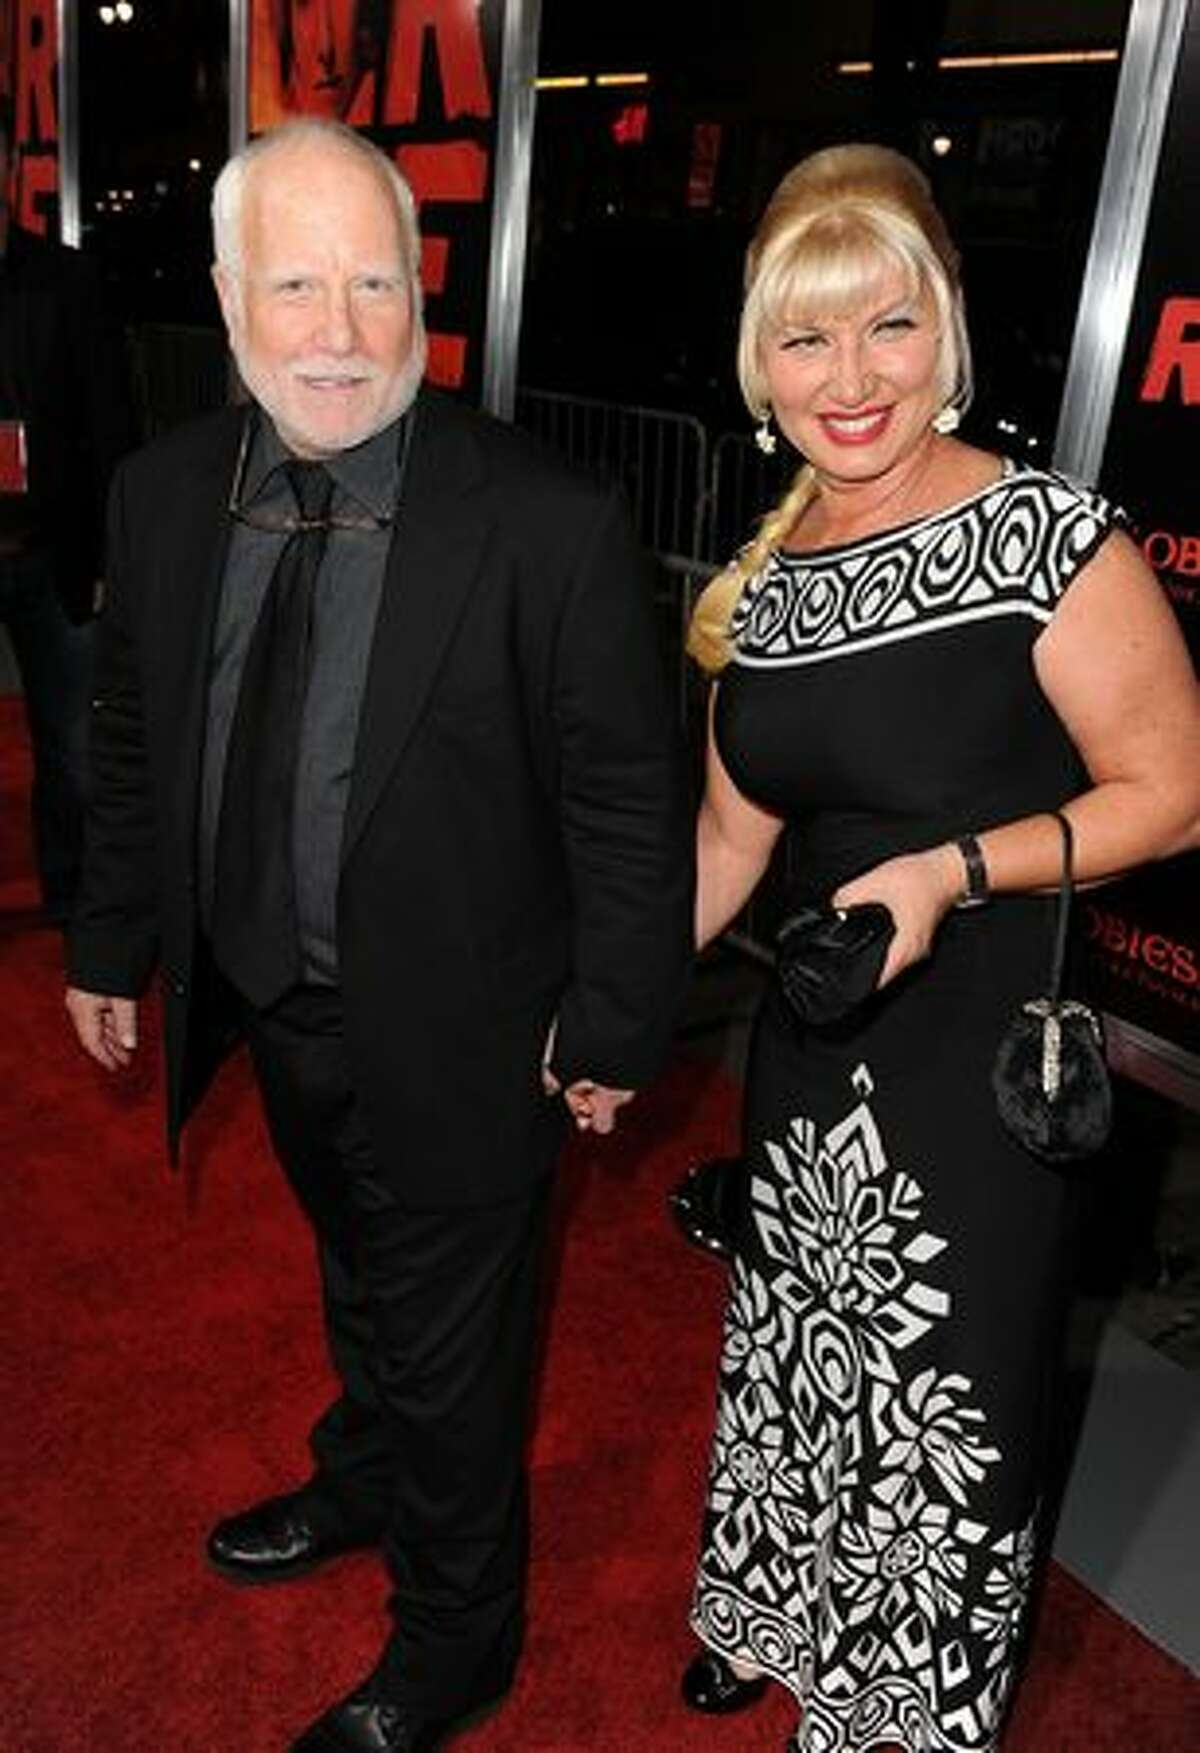 Actor Richard Dreyfuss and Svetlana Erokhin arrive at a special screening of Summit Entertainment's